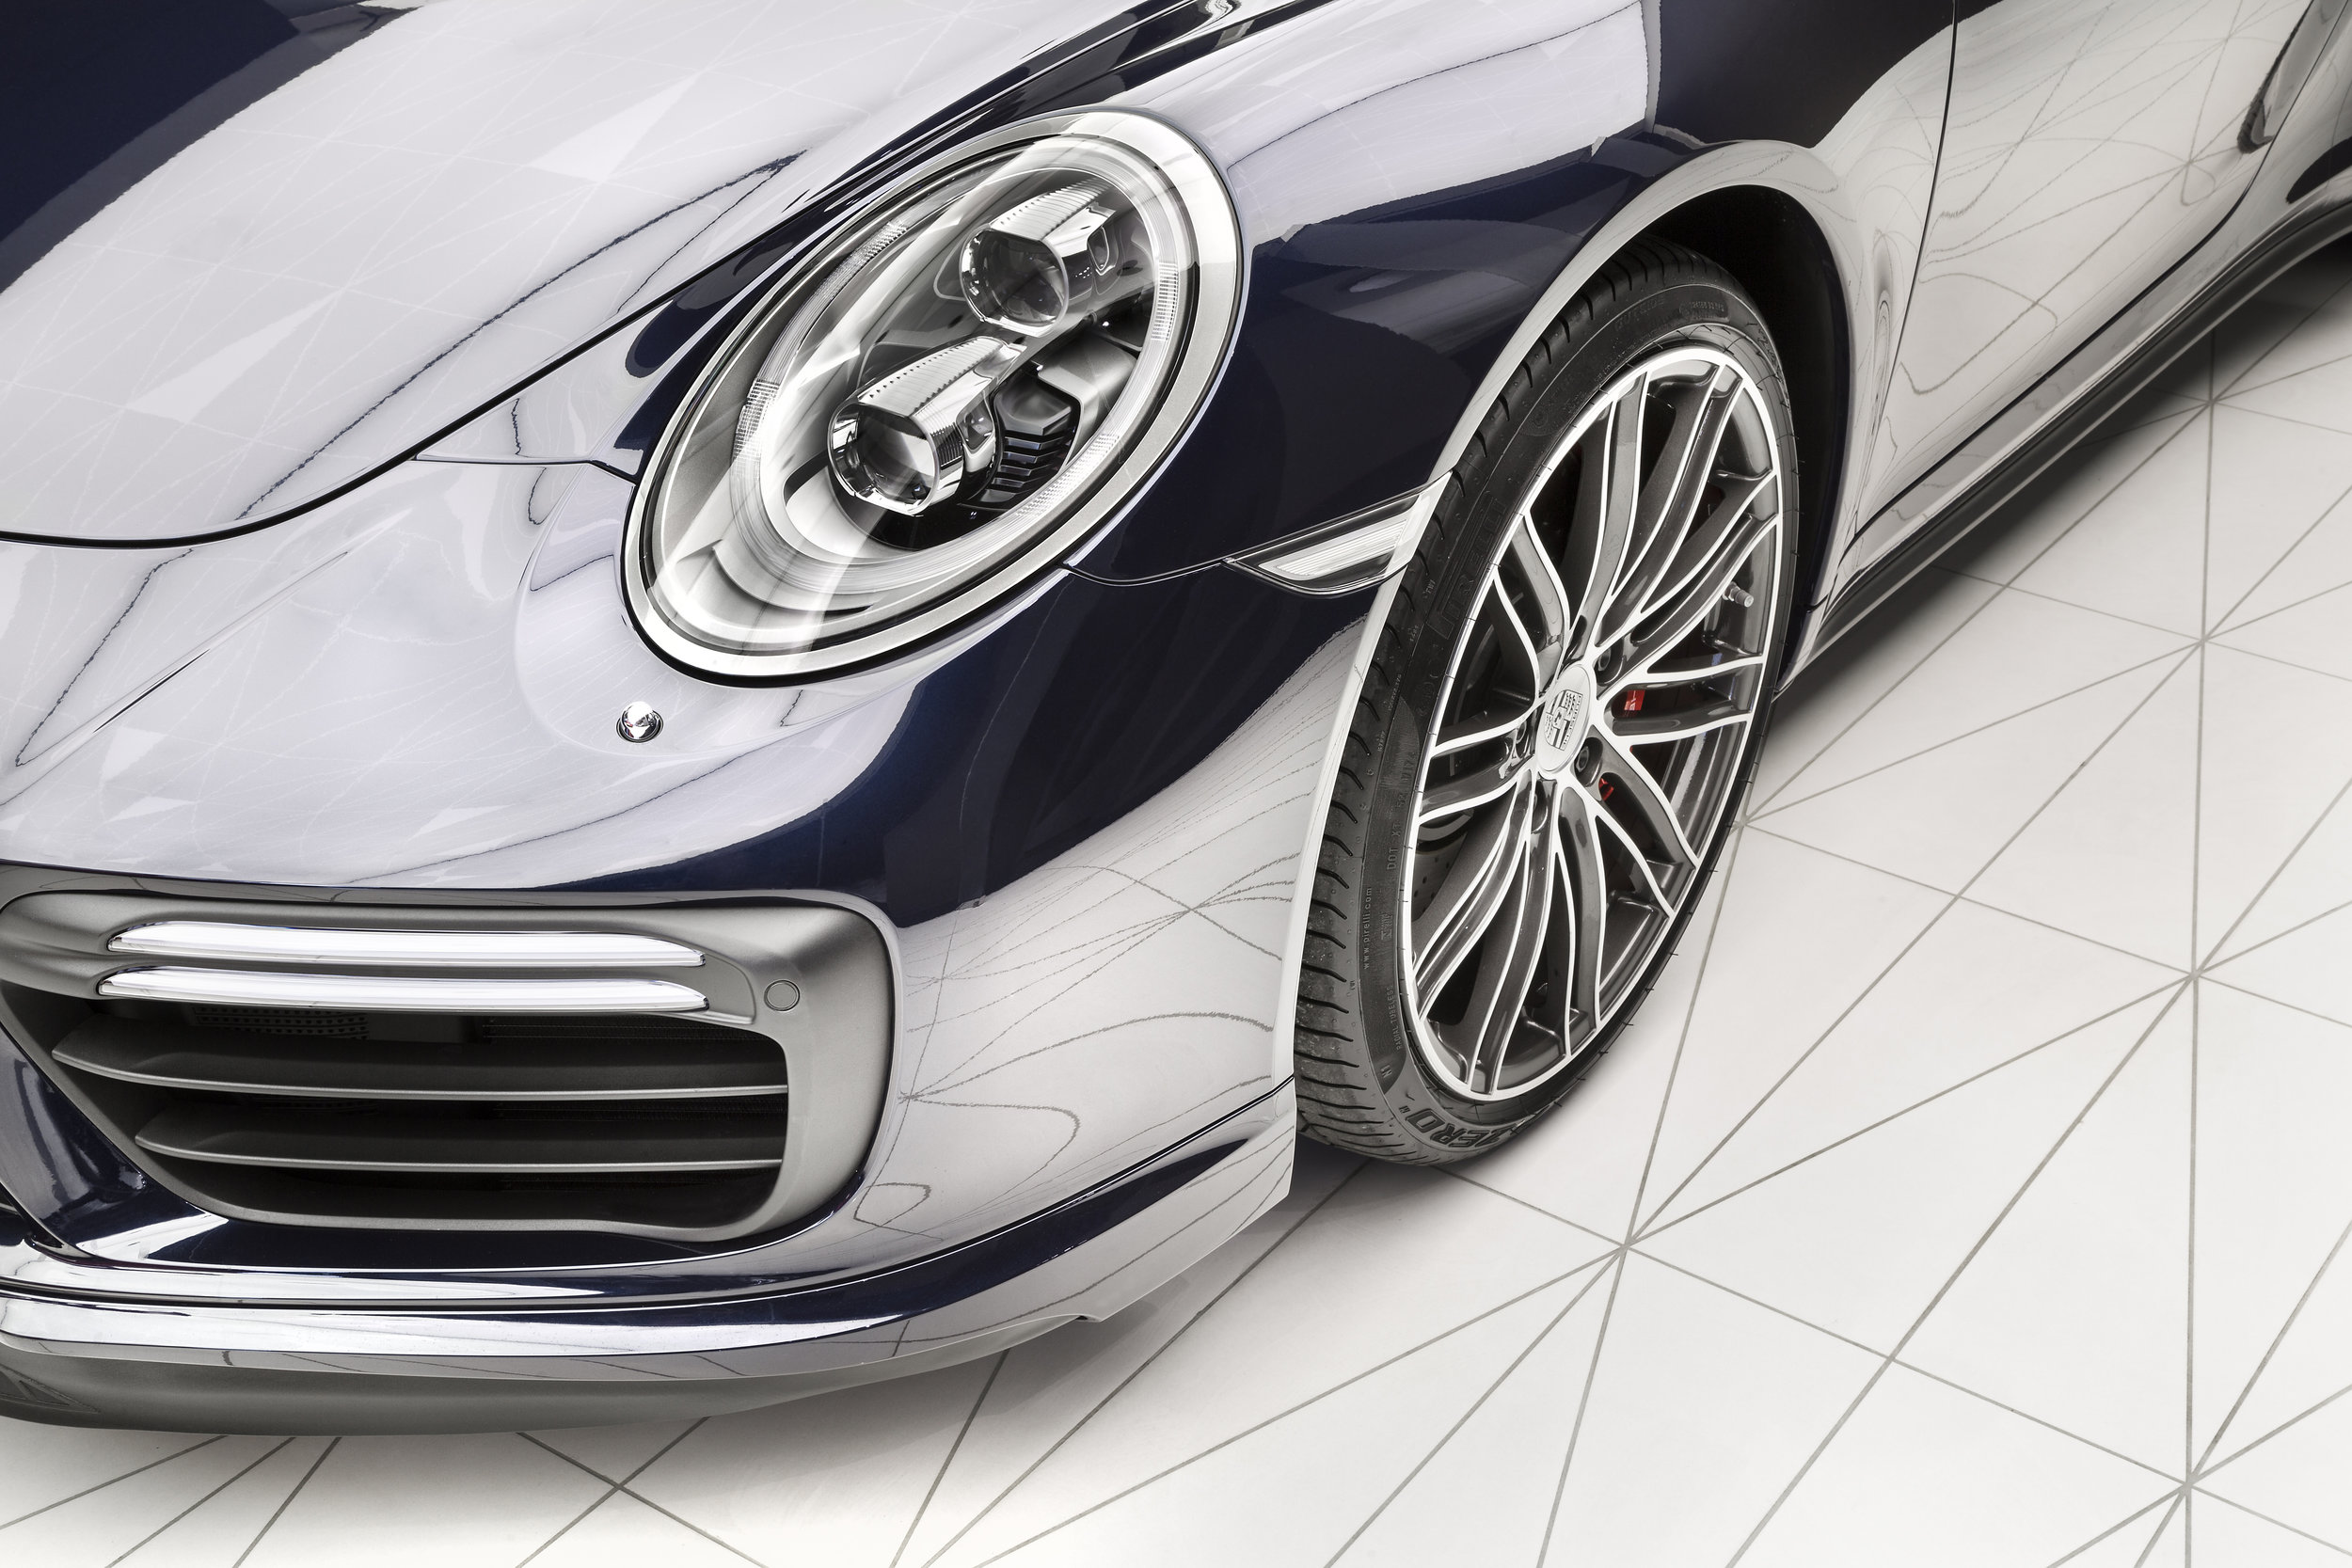 porsche-studio_retail-interior-design_coordination-berlin_14a.jpg